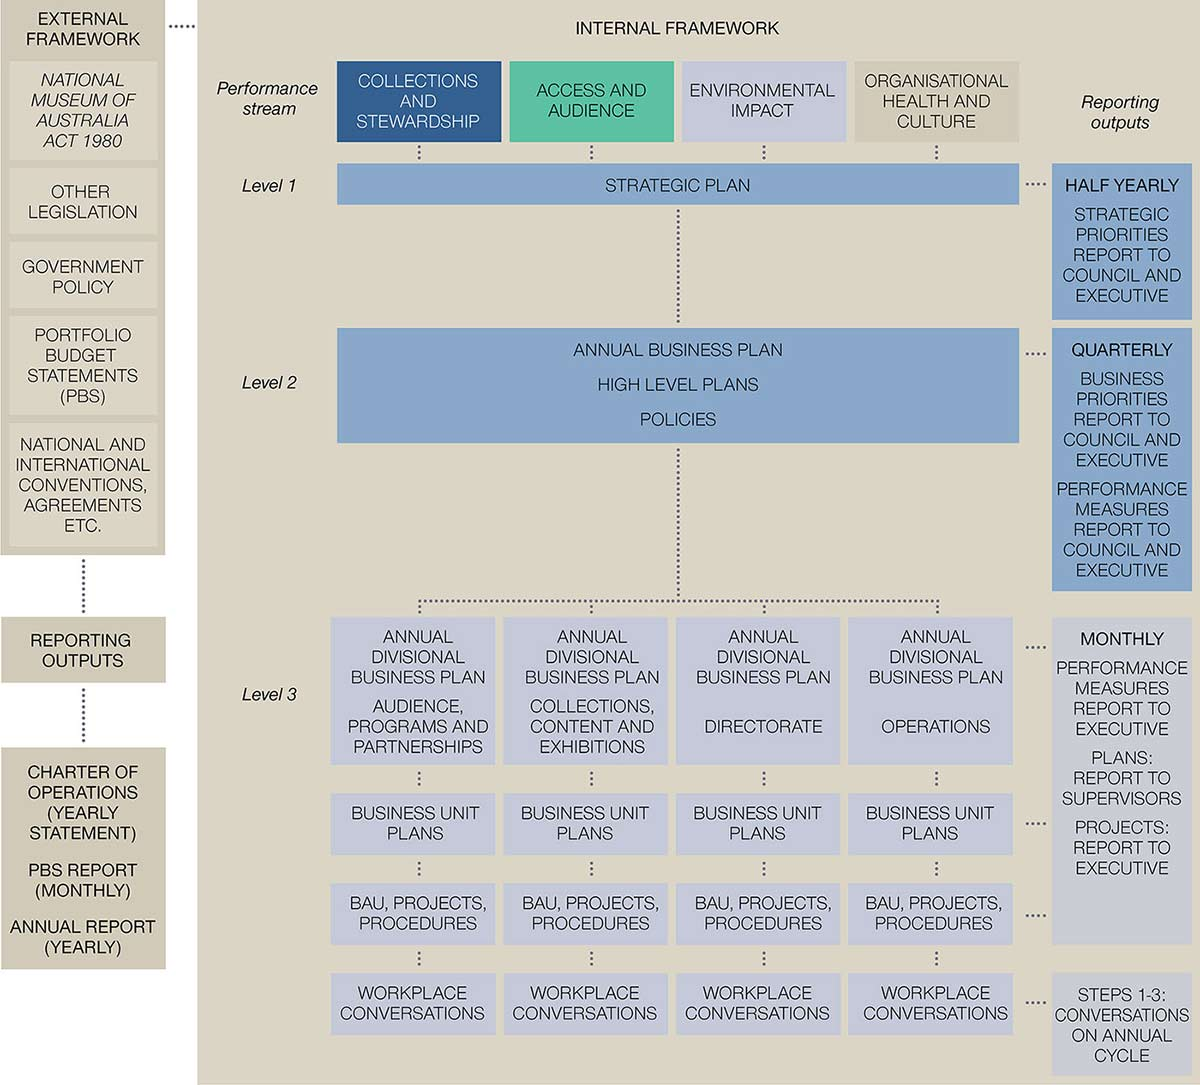 Flow chart of the Museum Performance Management Framework overview for 2010-2011. Left-hand column under the main heading 'External framework' reads 'National Museum of Australia Act 1980', other legislation, government policy, Portfolio Budget Statements (PBS), national and international conventions, agreements etc'. A line joins these categories to another box which reads 'Reporting outputs', and at the bottom, another which reads 'Charter of Operations (yearly statement) / PBS report (monthly) / Annual report (yearly)'. To the right of the chart, under the main heading 'Internal framework', are four columns headed: 'Collections and Stewardship, Access and Audience, Environmental Impact, Organisational Health and Culture.' Each of these performance streams is linked by a line down to the 'Level 1: Strategic Plan' and 'Level 2: Annual business plan / High level plans / Policies'. They also drill down to 'Level 3: Annual divisional business plan' for these four separate areas: 'Audience, Programs and Partnerships; Collections, Content and Exhibitions; Directorate; Operations'. Each of these in turn links to separate 'Business unit plans; BAU, projects, procedures; Workplace Conversations'. At the far right, under a column headed 'Reporting outputs', the Strategic Plan boxed is linked to 'Half yearly strategic priorities report to Council and Executive'. Level 2 is linked to 'Quarterly Business Report to Council and Executive, Performance Measures Report to Council and Executive'. Level 3 is linked to 'Monthly / Performance Measures Report to Executive / Plans: report to supervisors / Projects: report to Executive'. Workplace Conversations at the bottom is linked to 'Steps 1-3: conversations on annual cycle'.